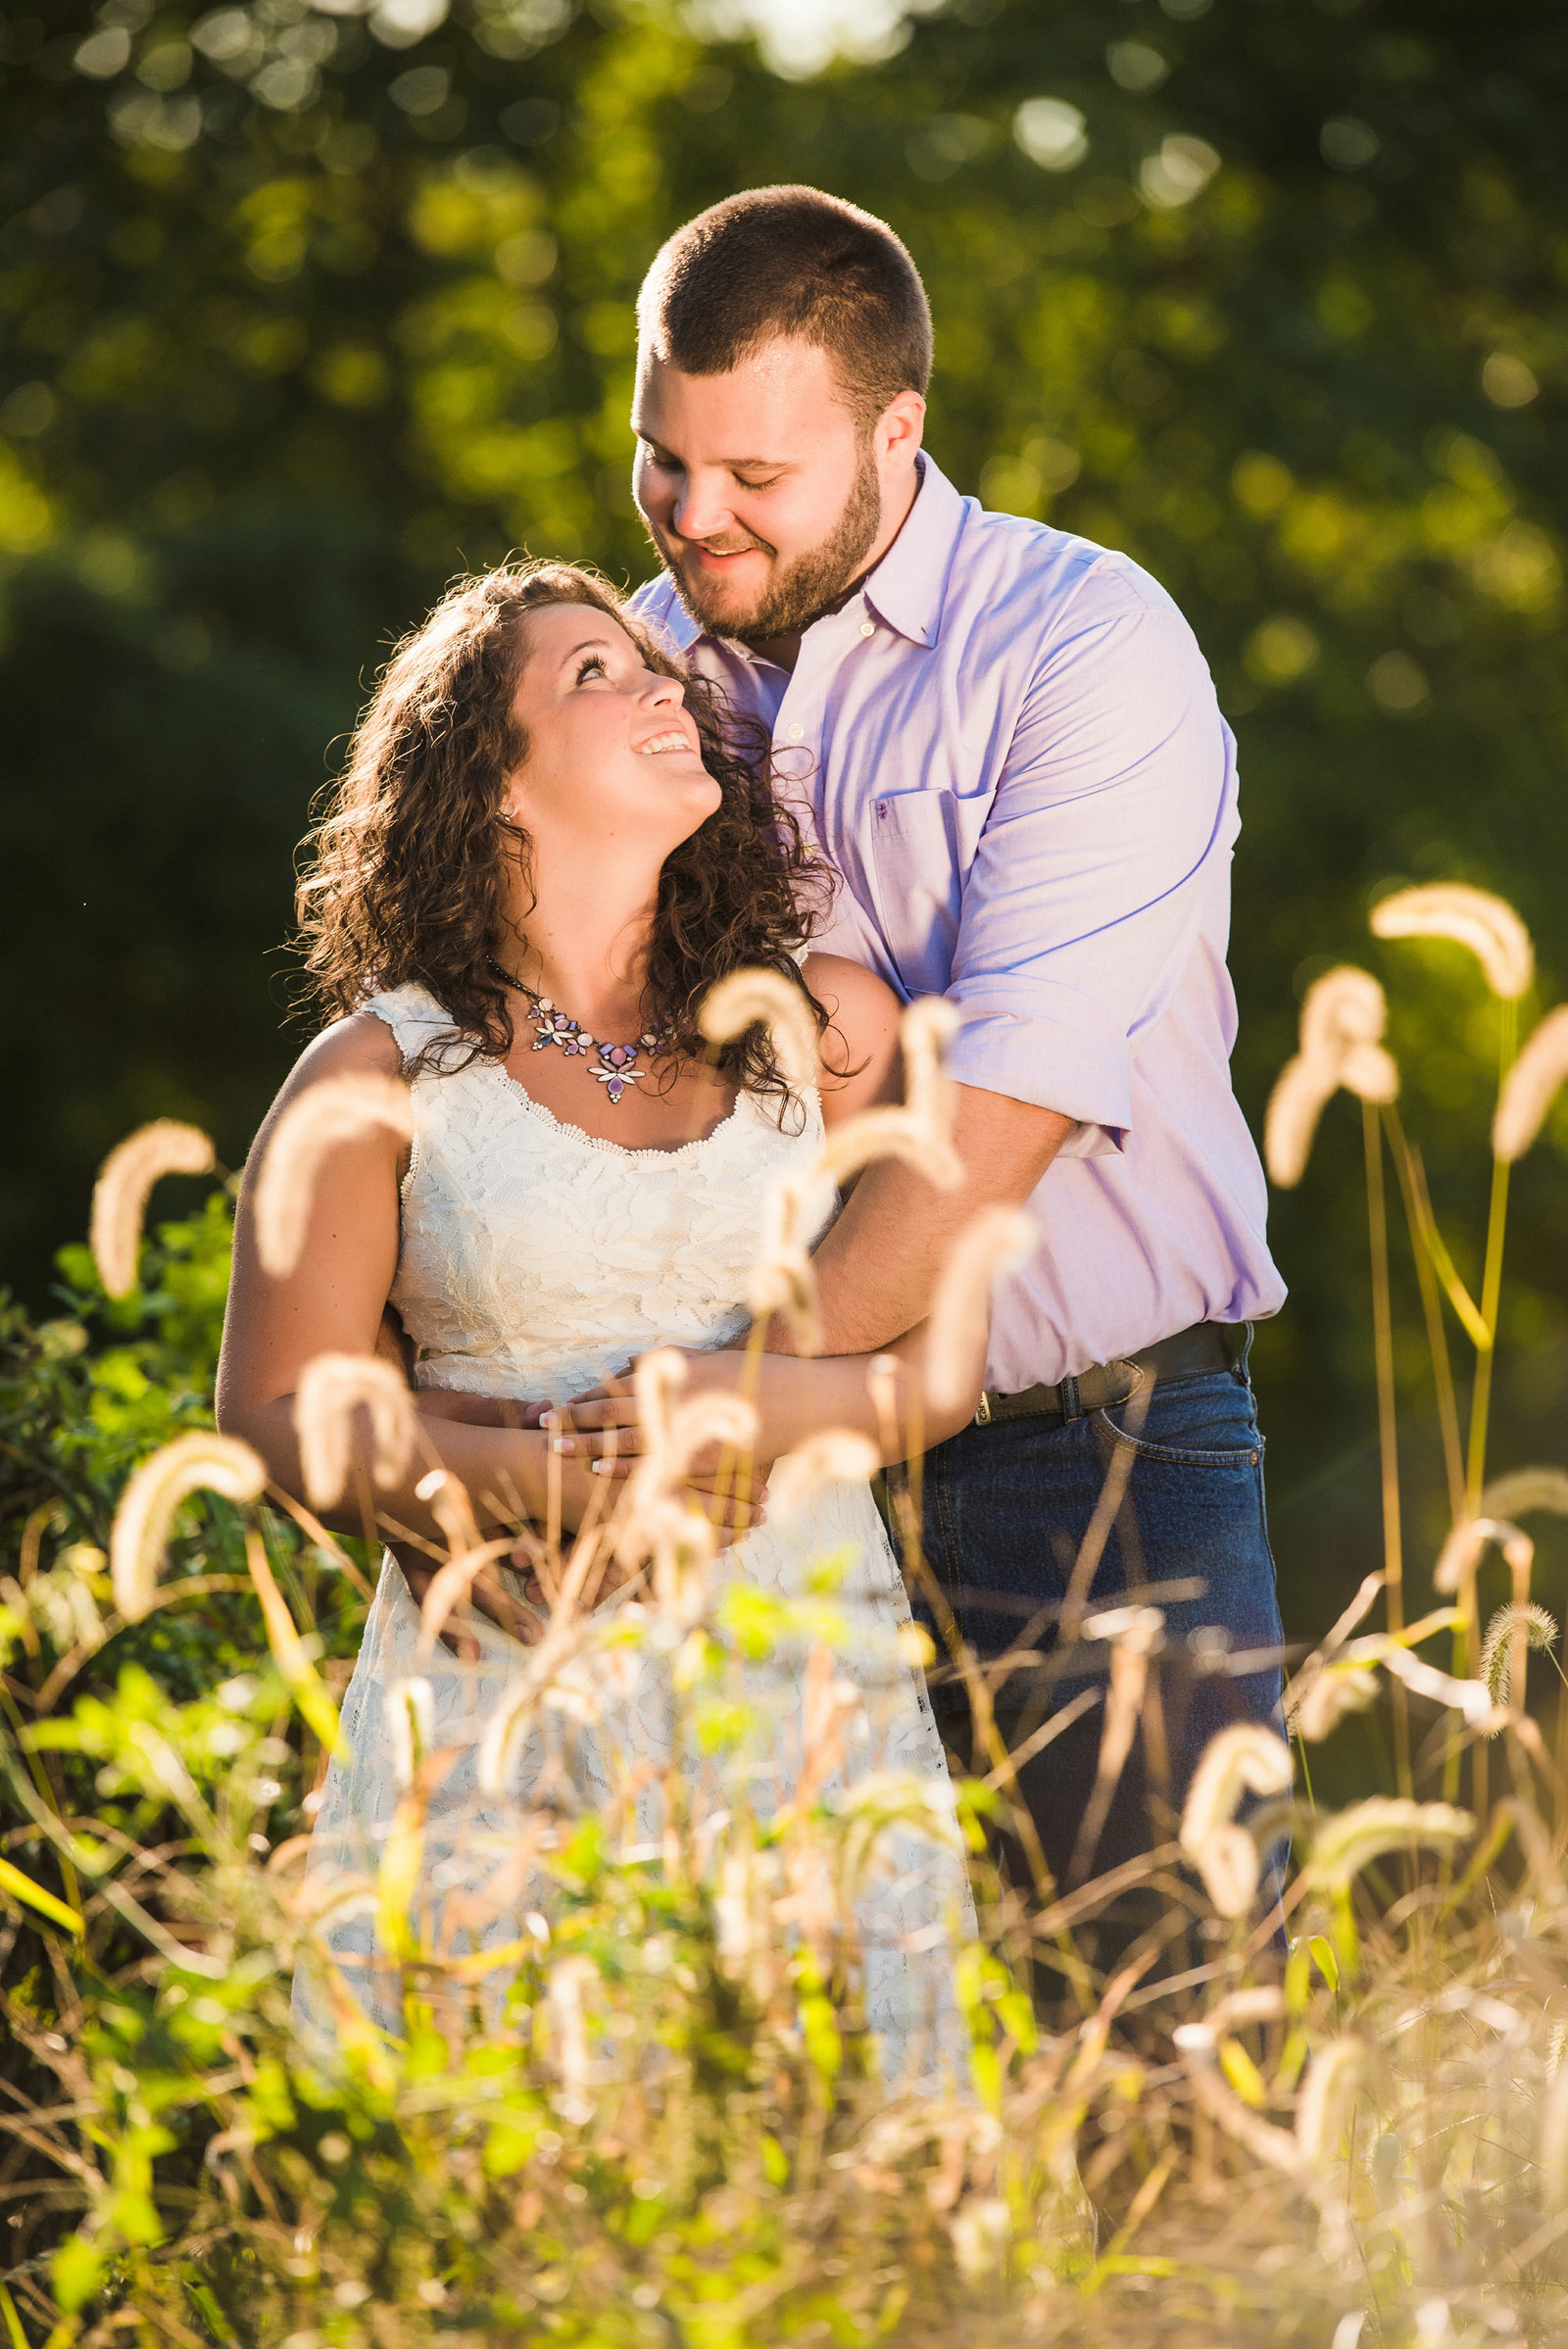 NJ_Rustic_Engagement_Photography002